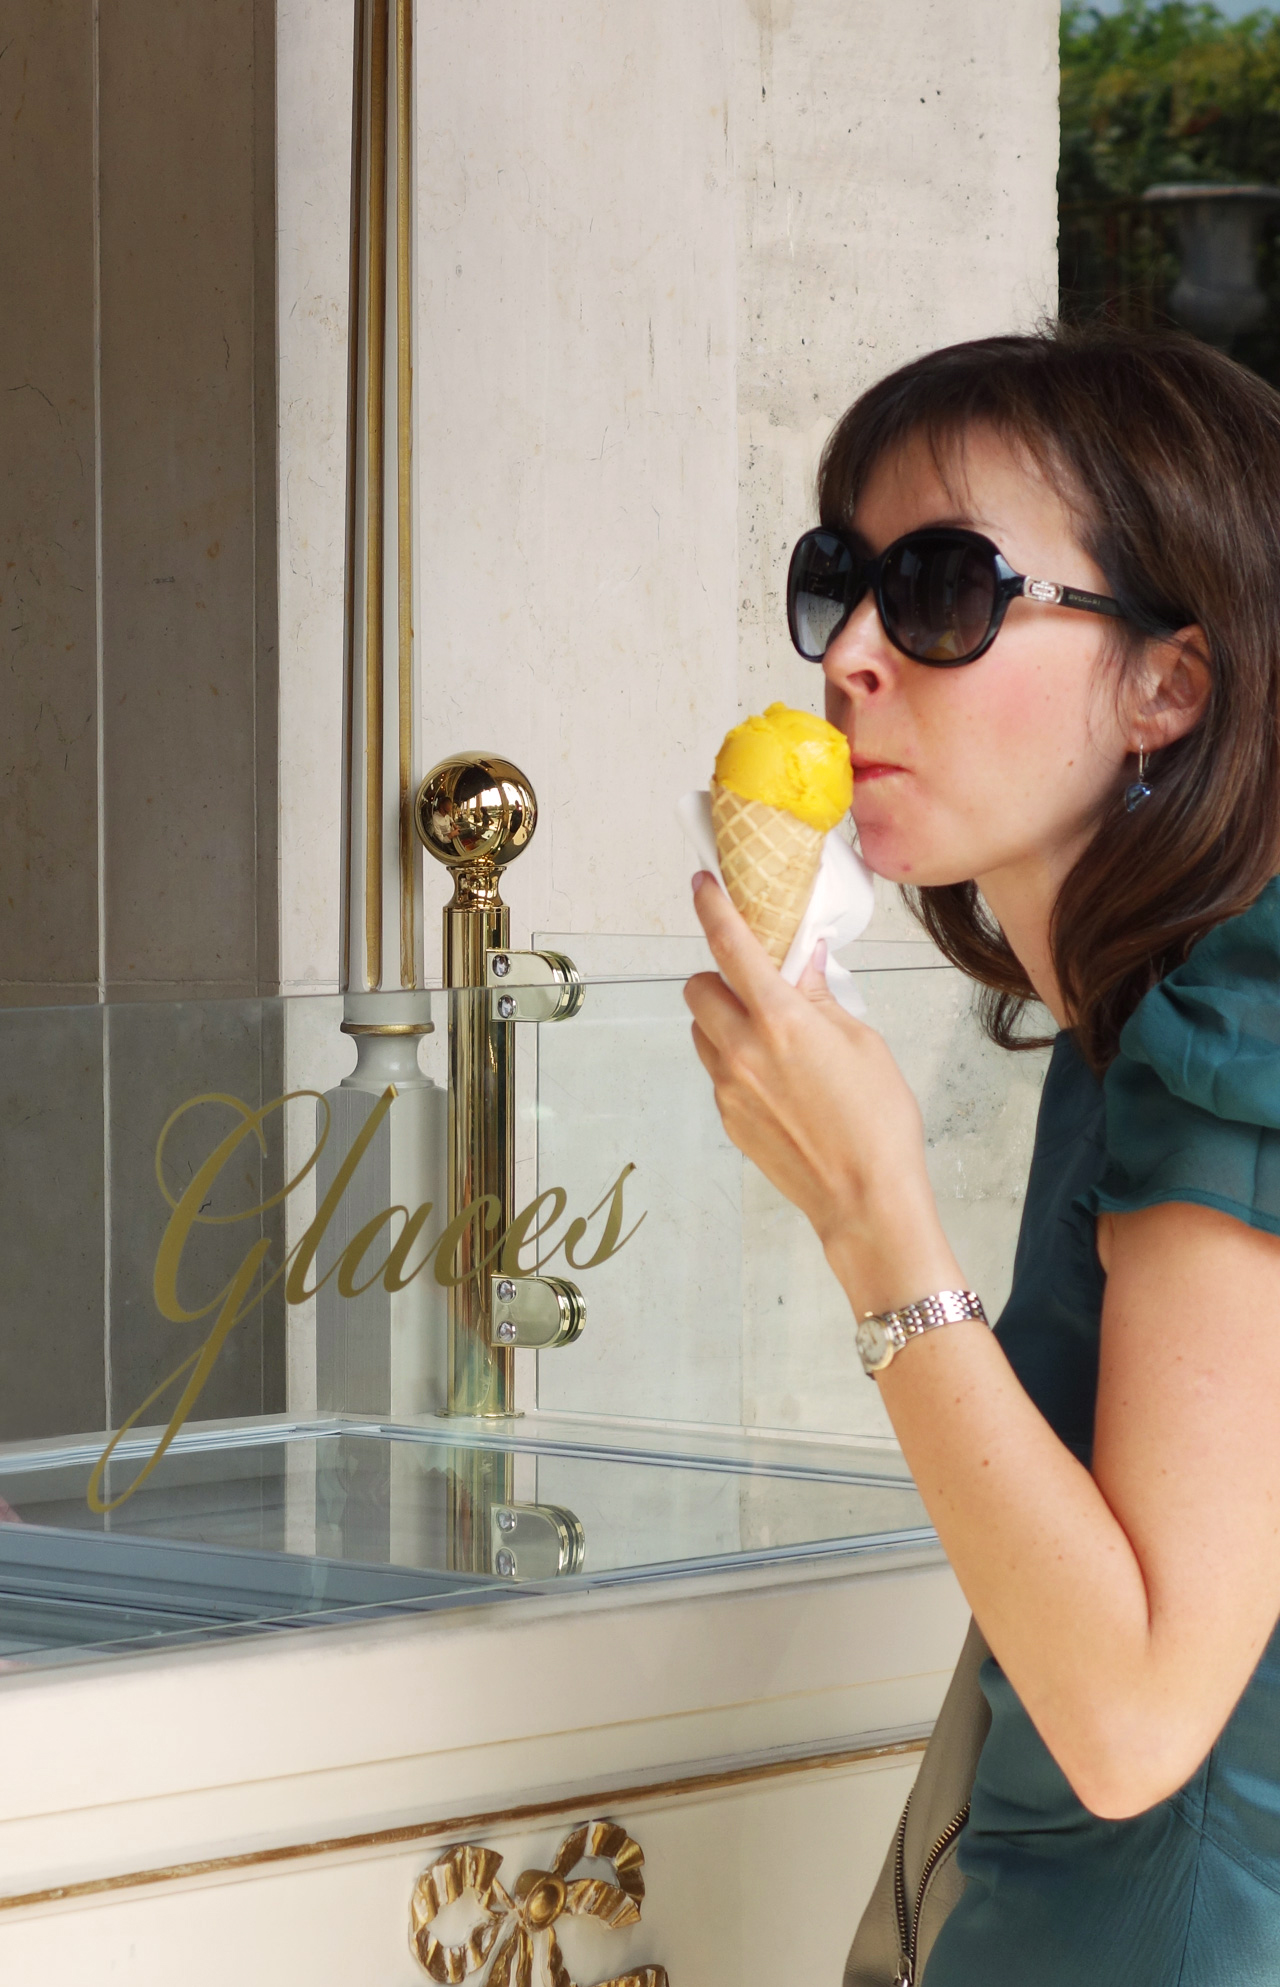 08_Angelina-Paris-glace-miam